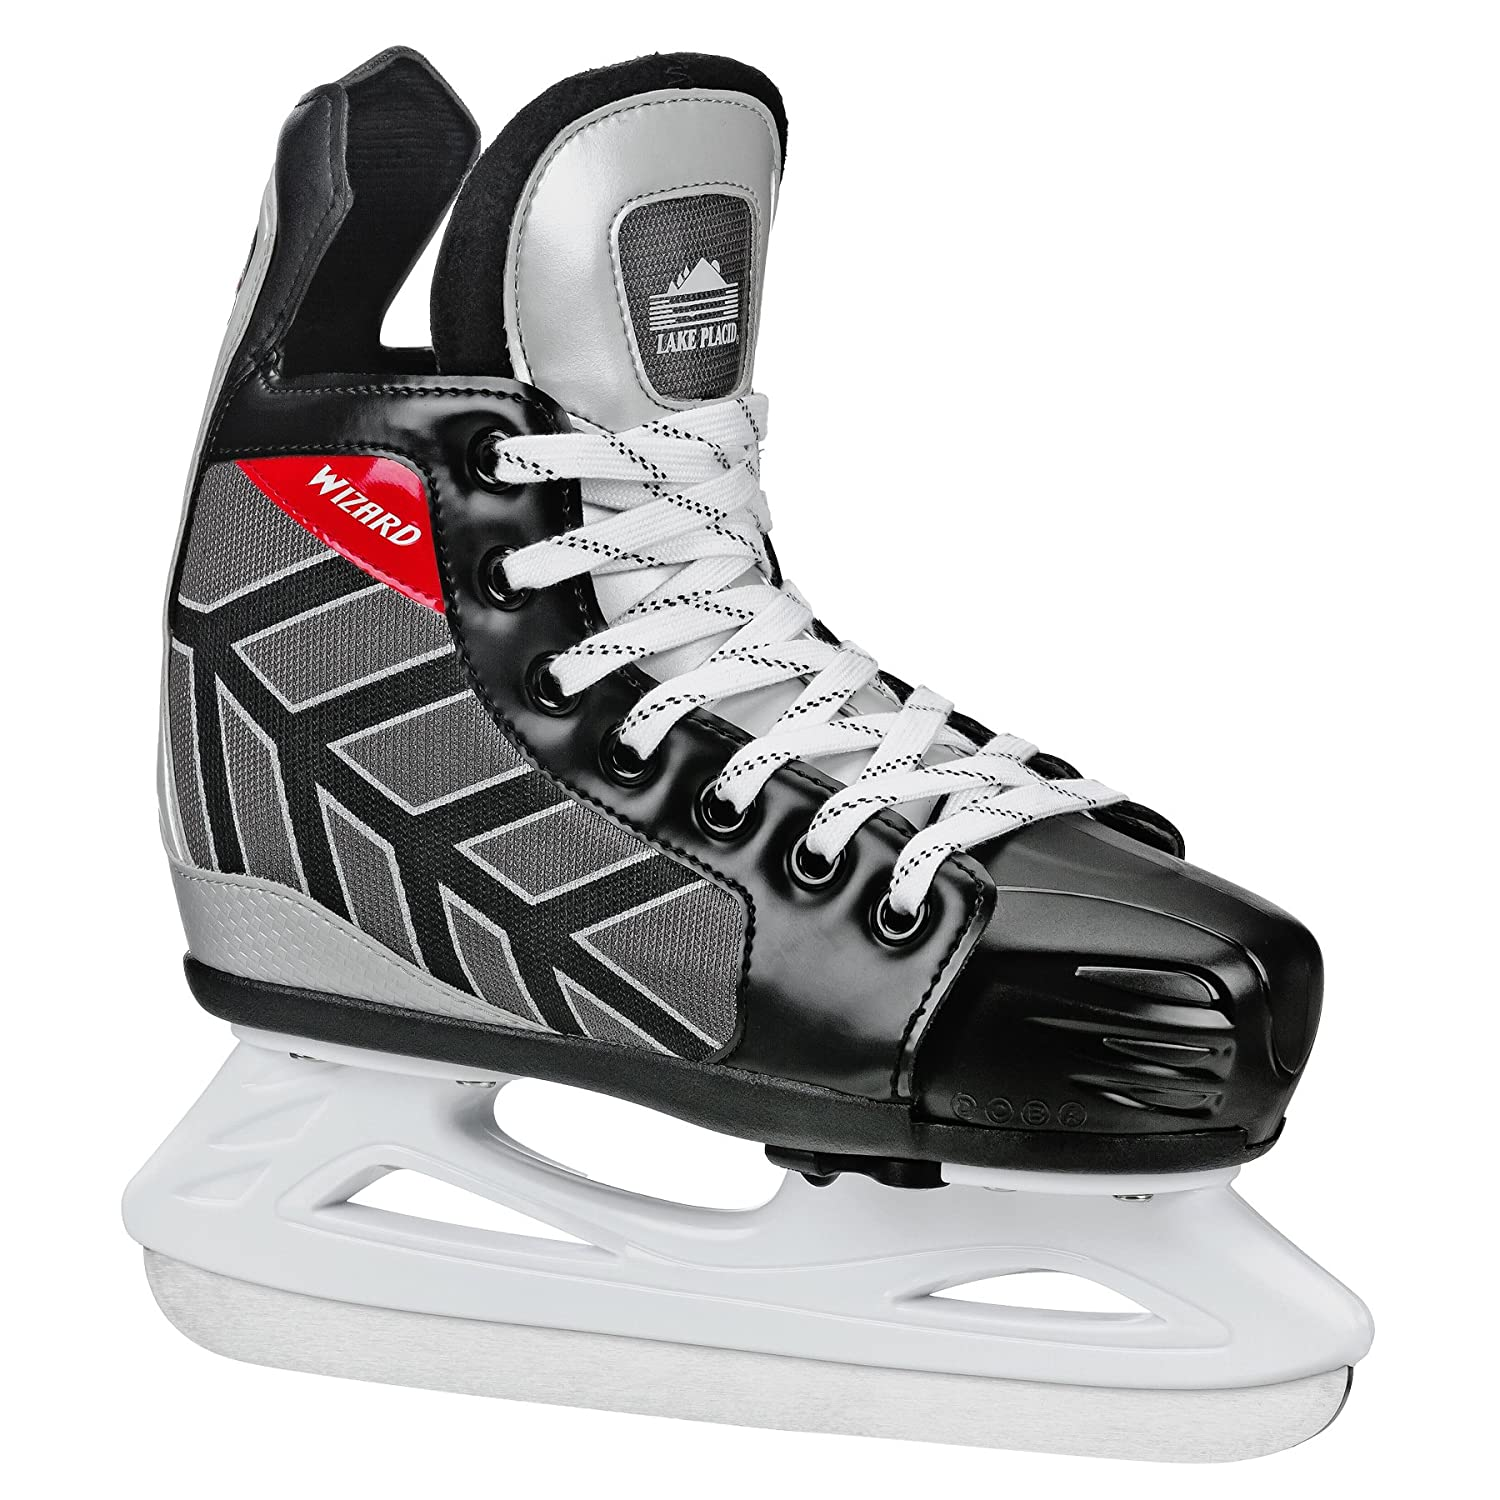 WIZARD 400 Adjustable Youth Hockey Skates